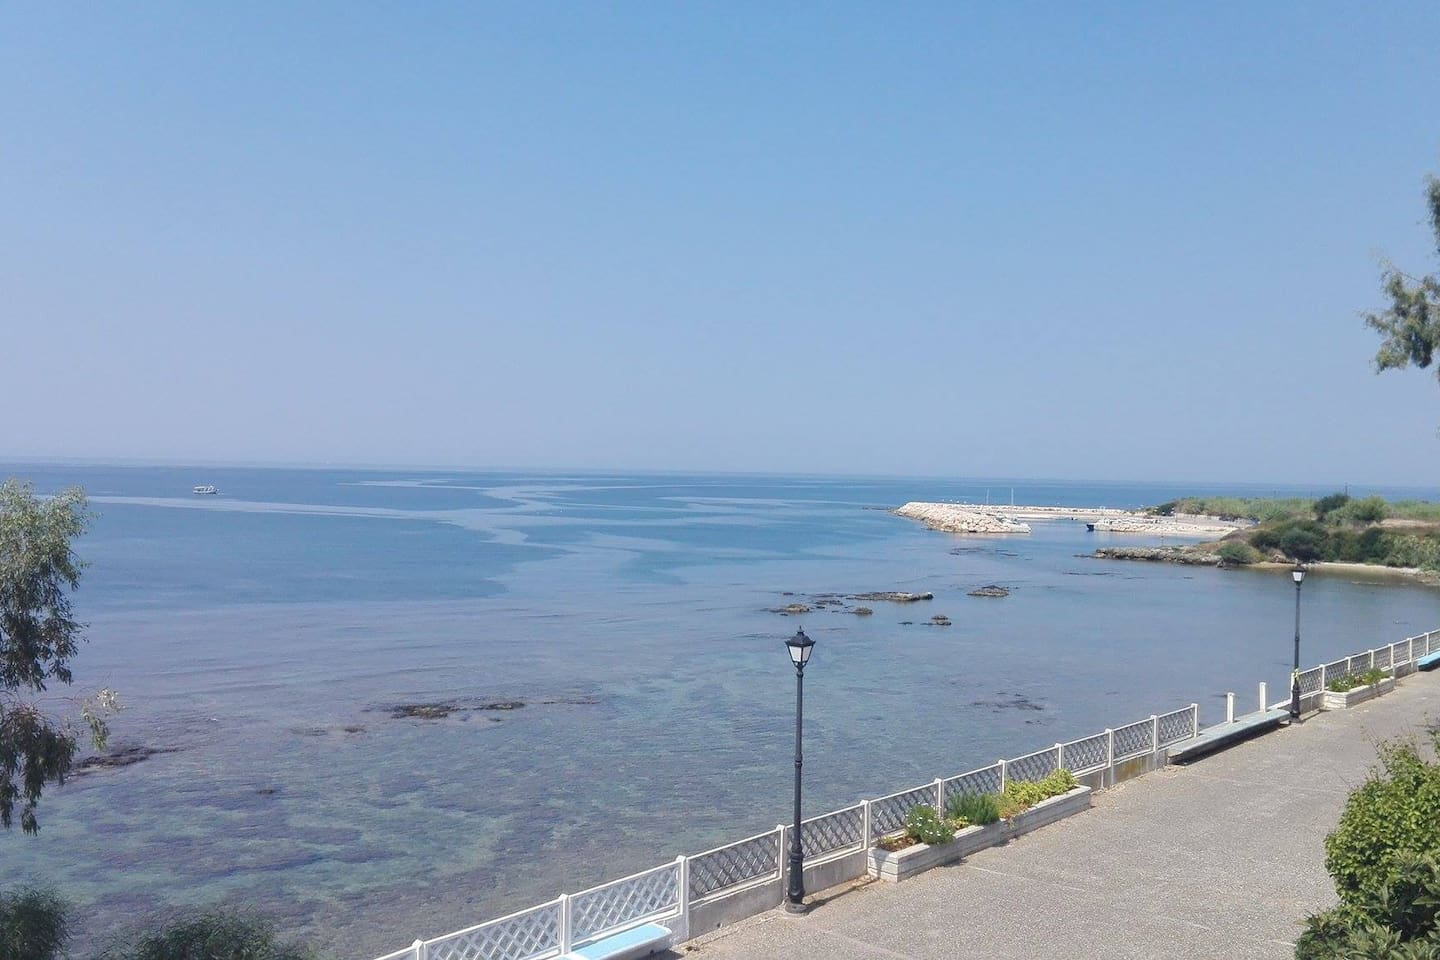 The Ionian Sea in front of the house